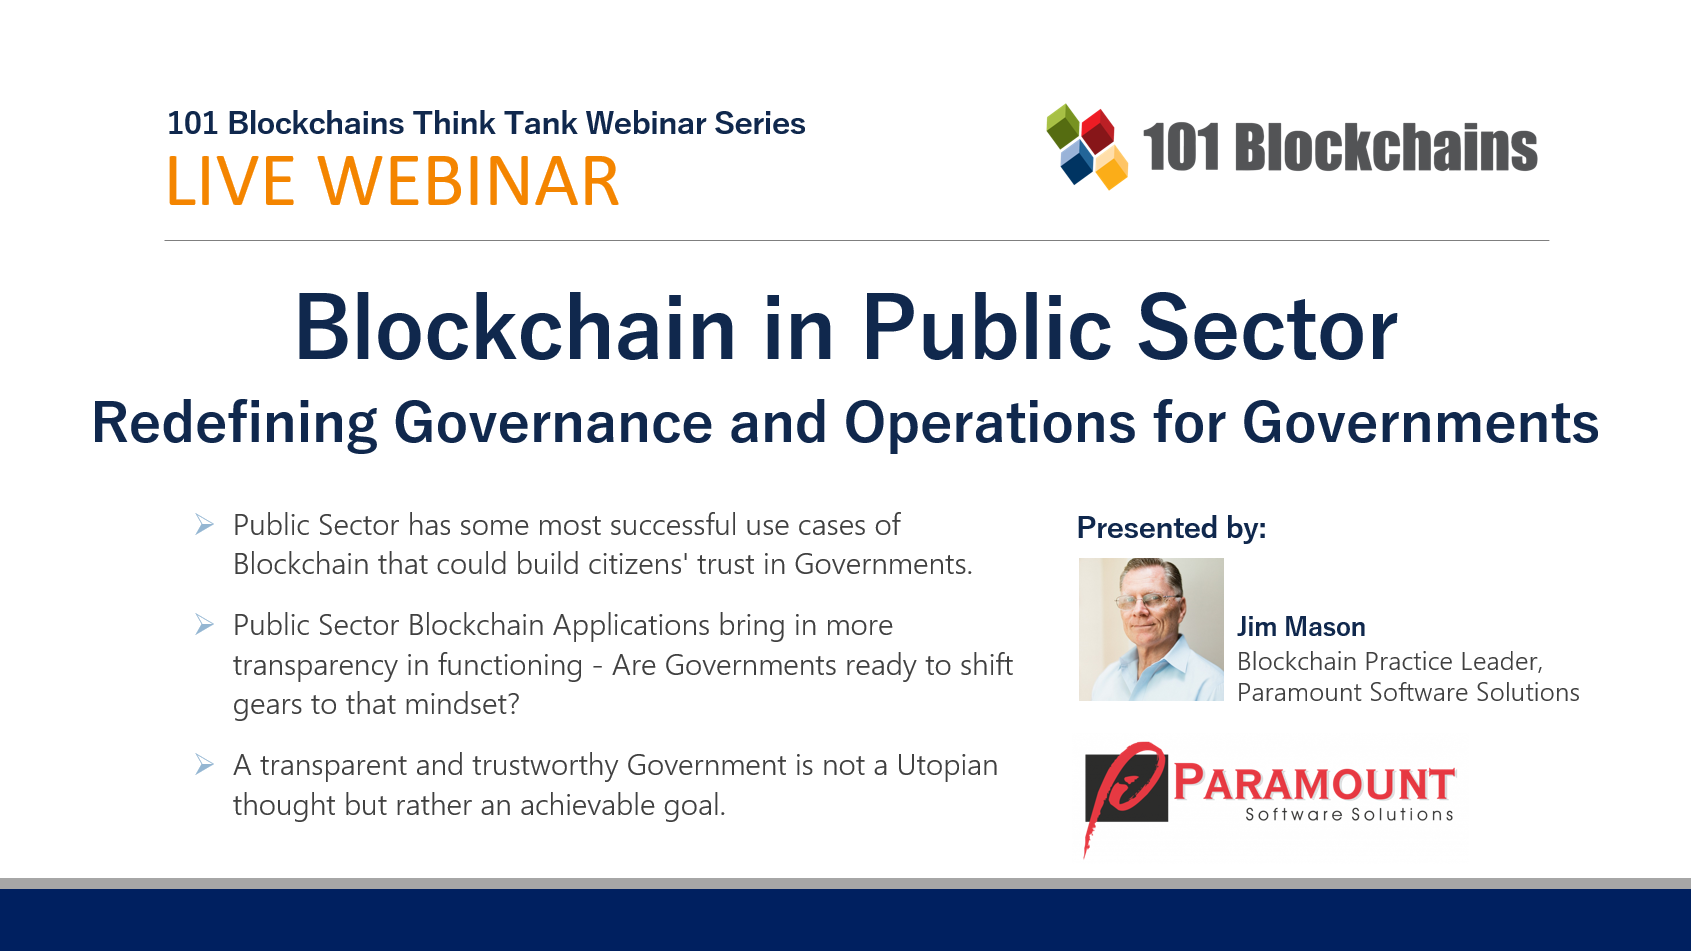 webinar on blockchain in public sector